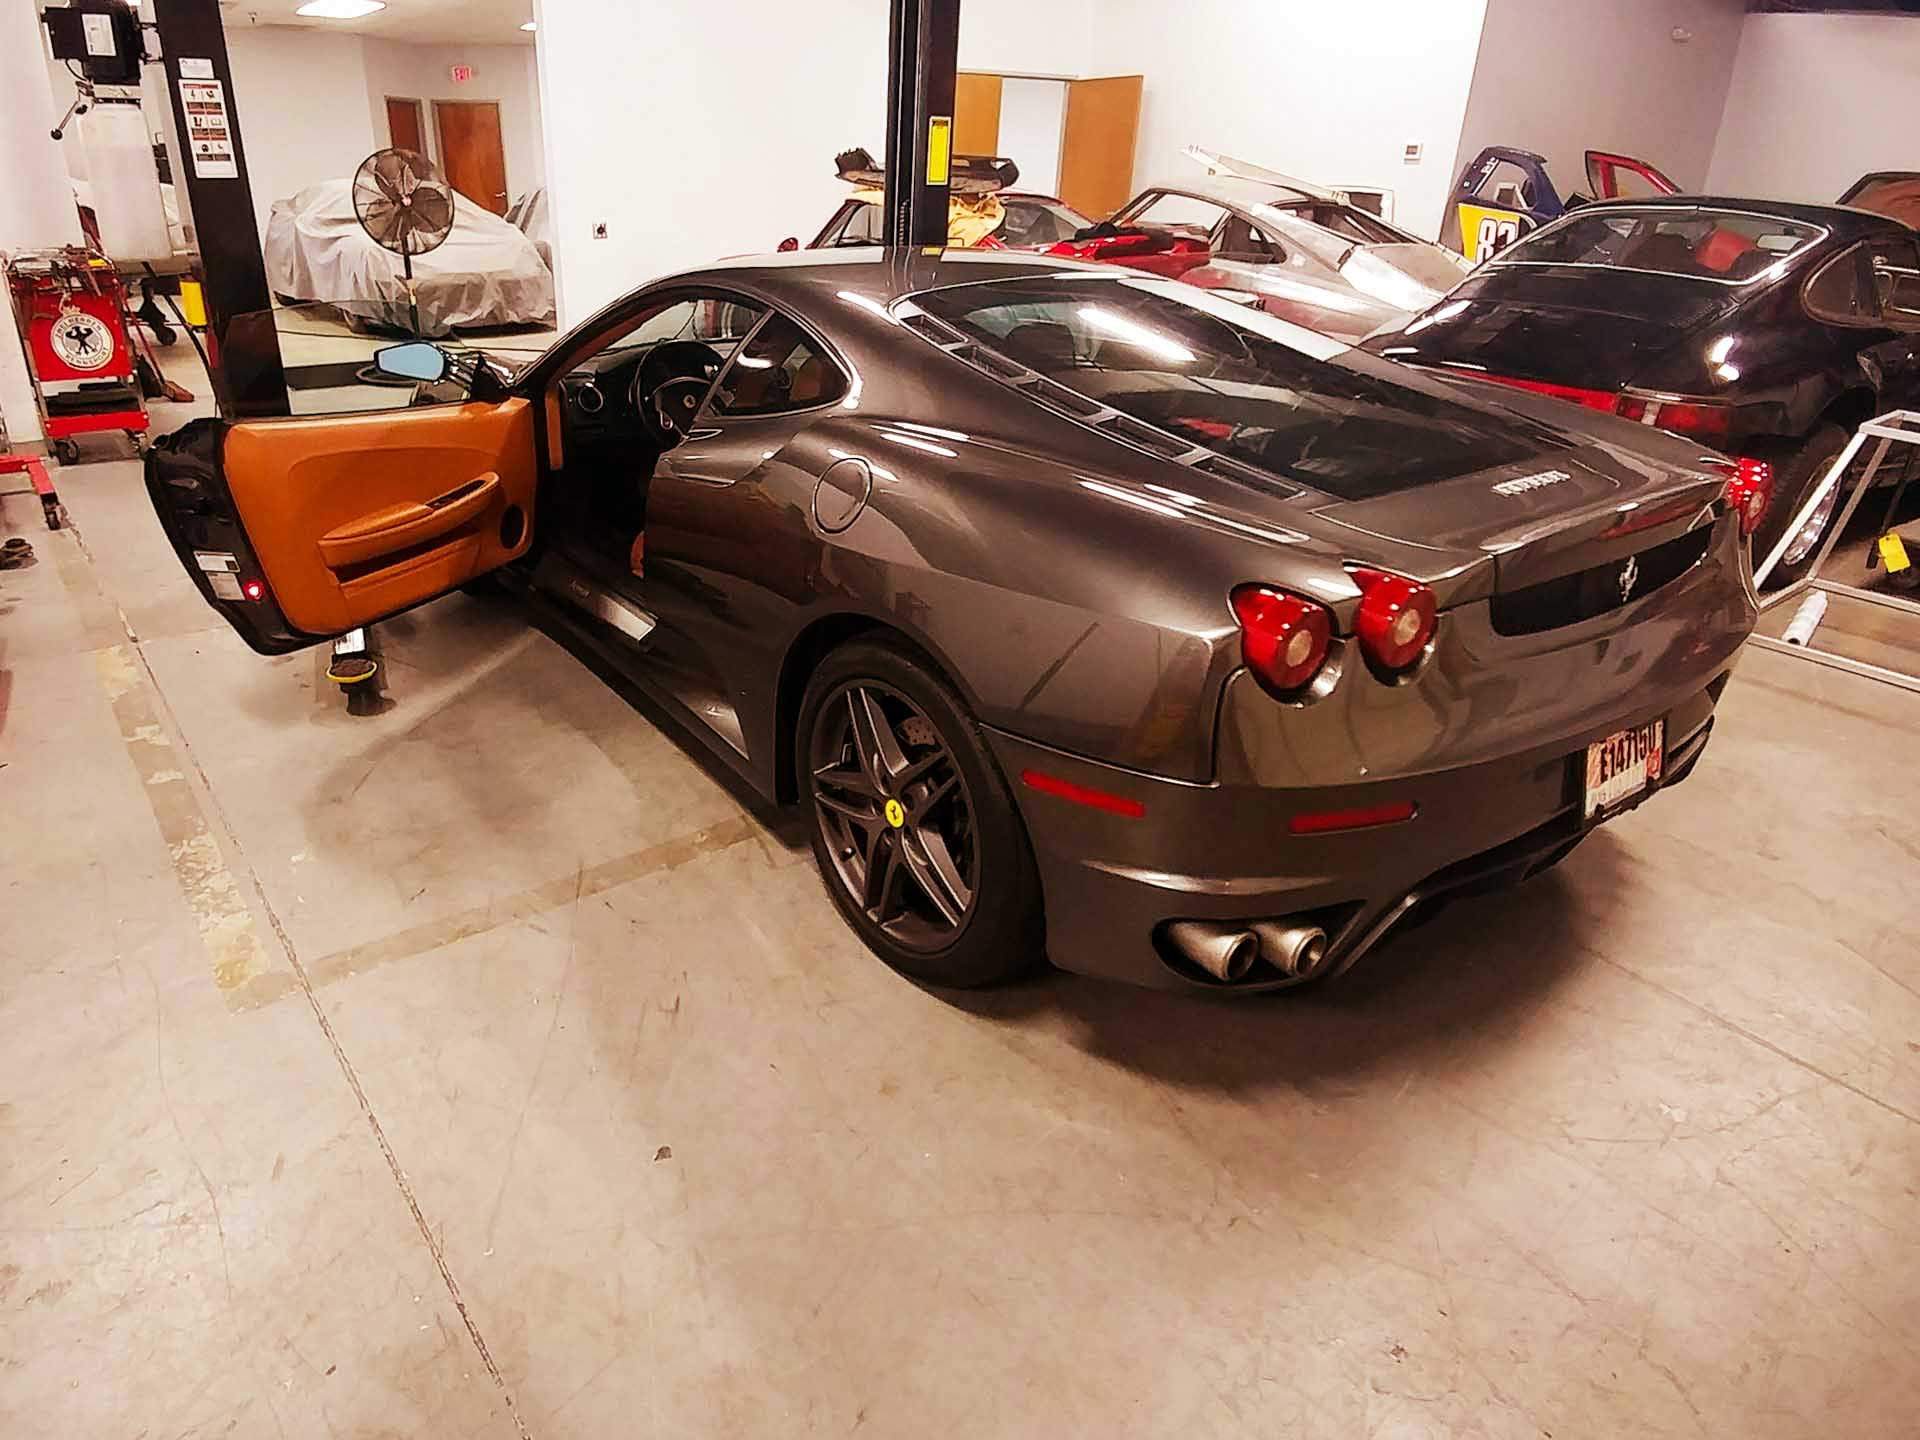 ferrari f430 being serviced in shop